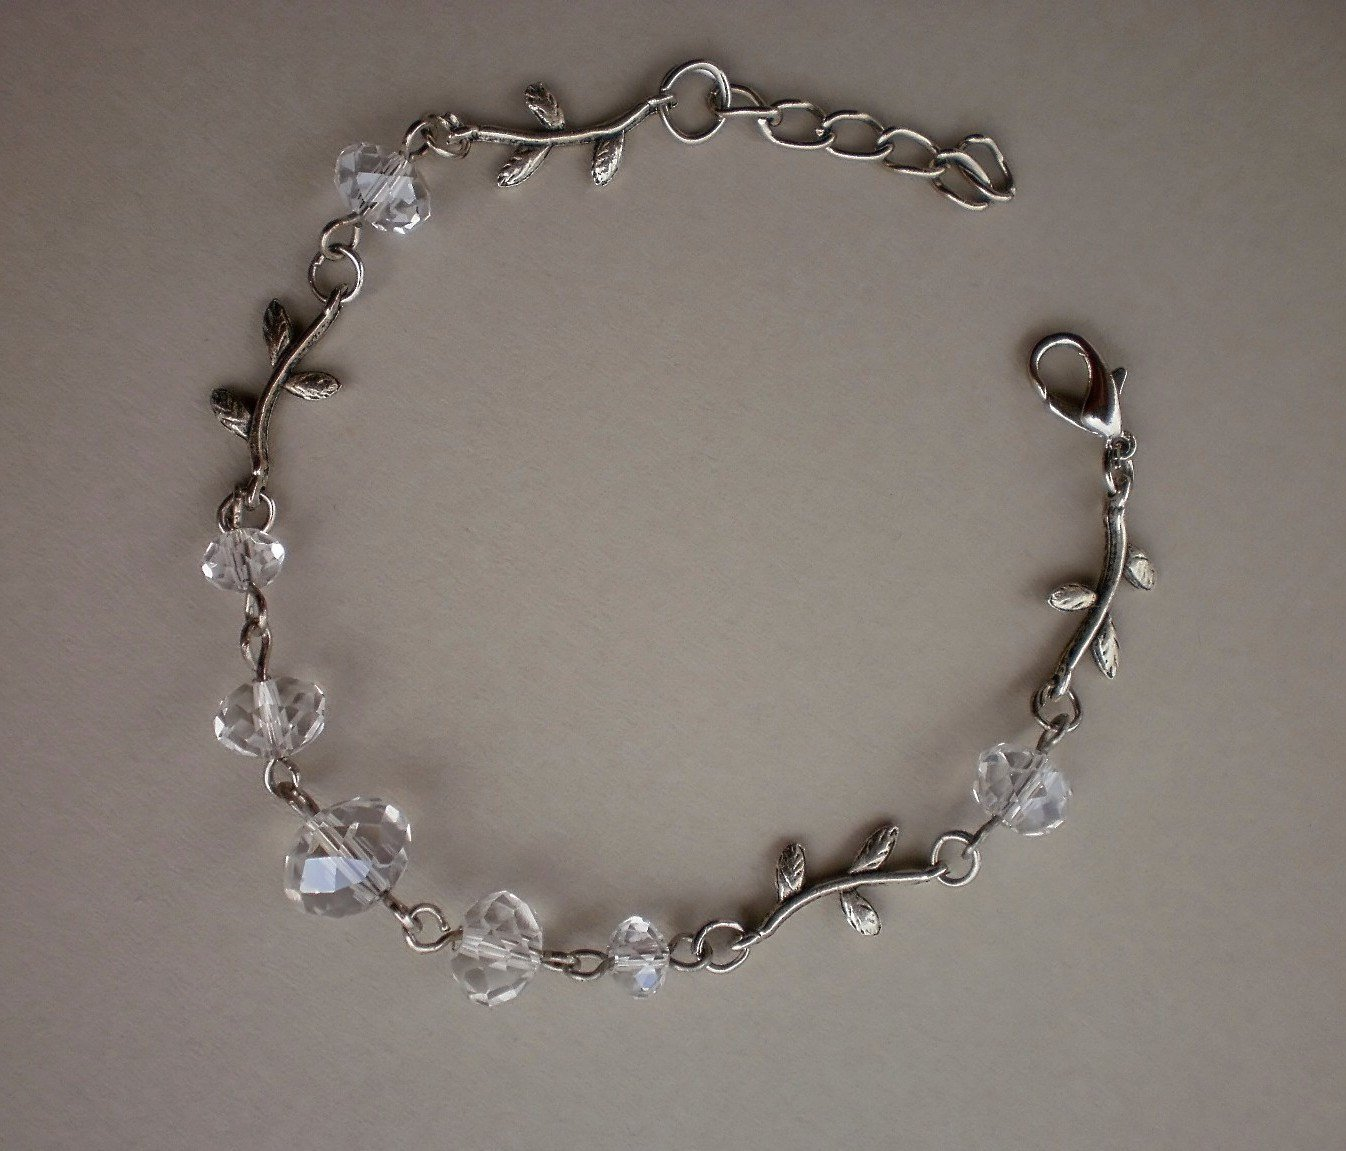 Crystal Transparend Beaded Bracelet Handcrafted Designer Jewelry/ Flowers Leafs